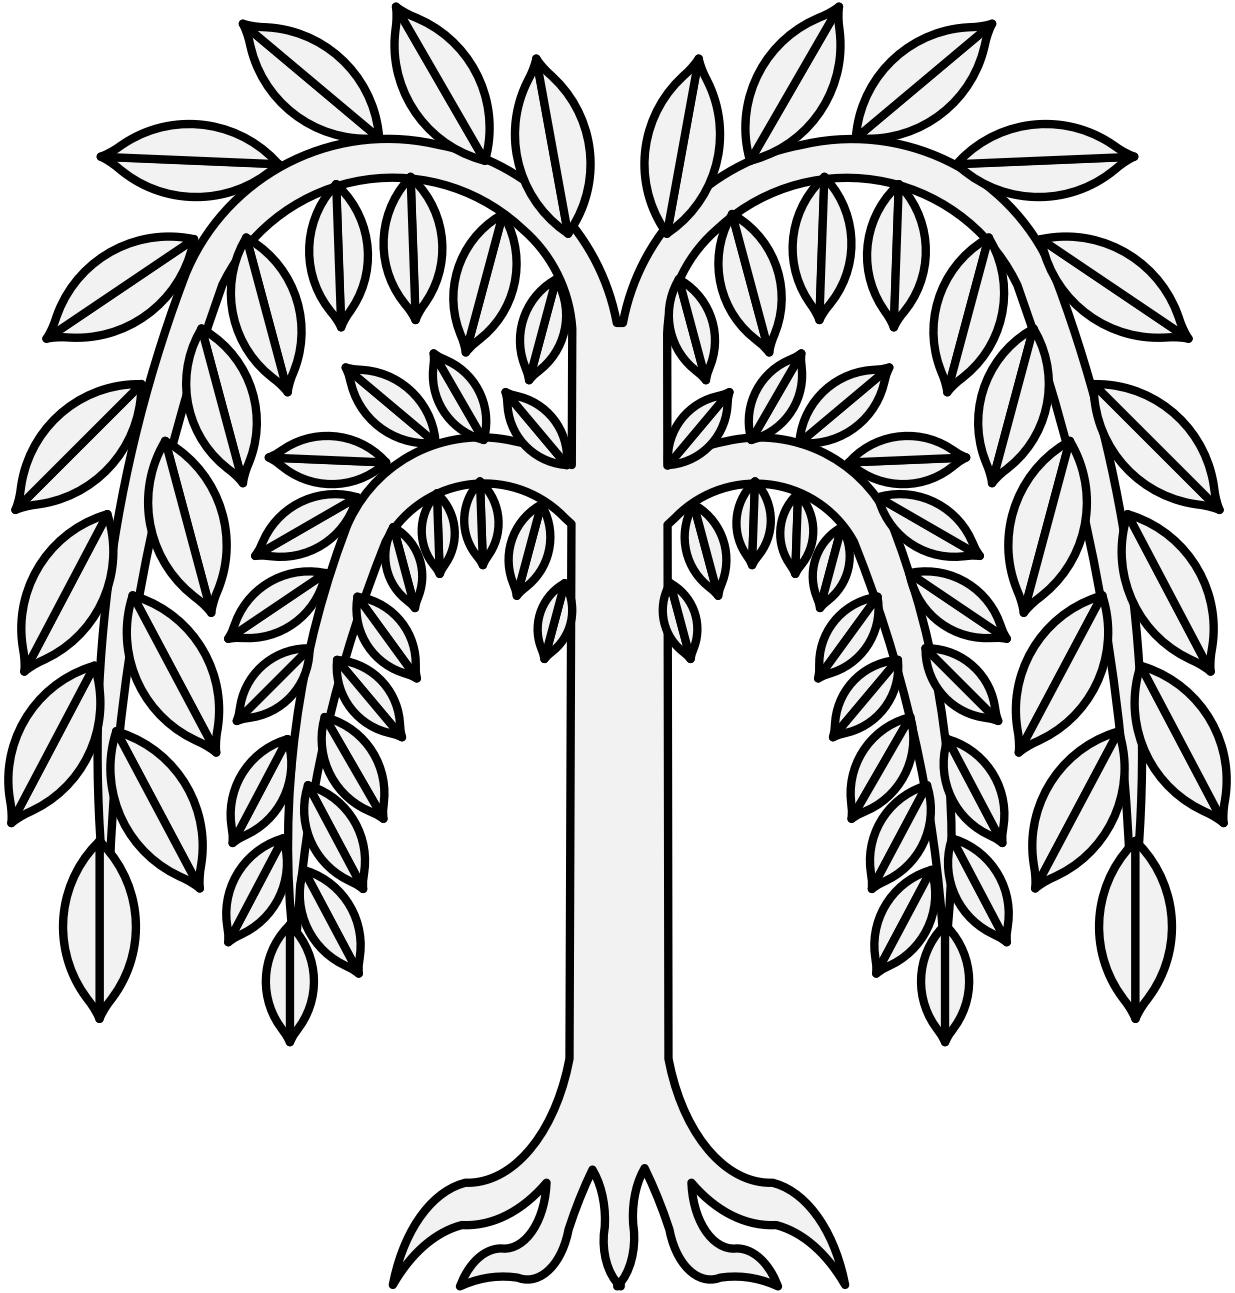 Willow drawing design. Traceable heraldic art pdf